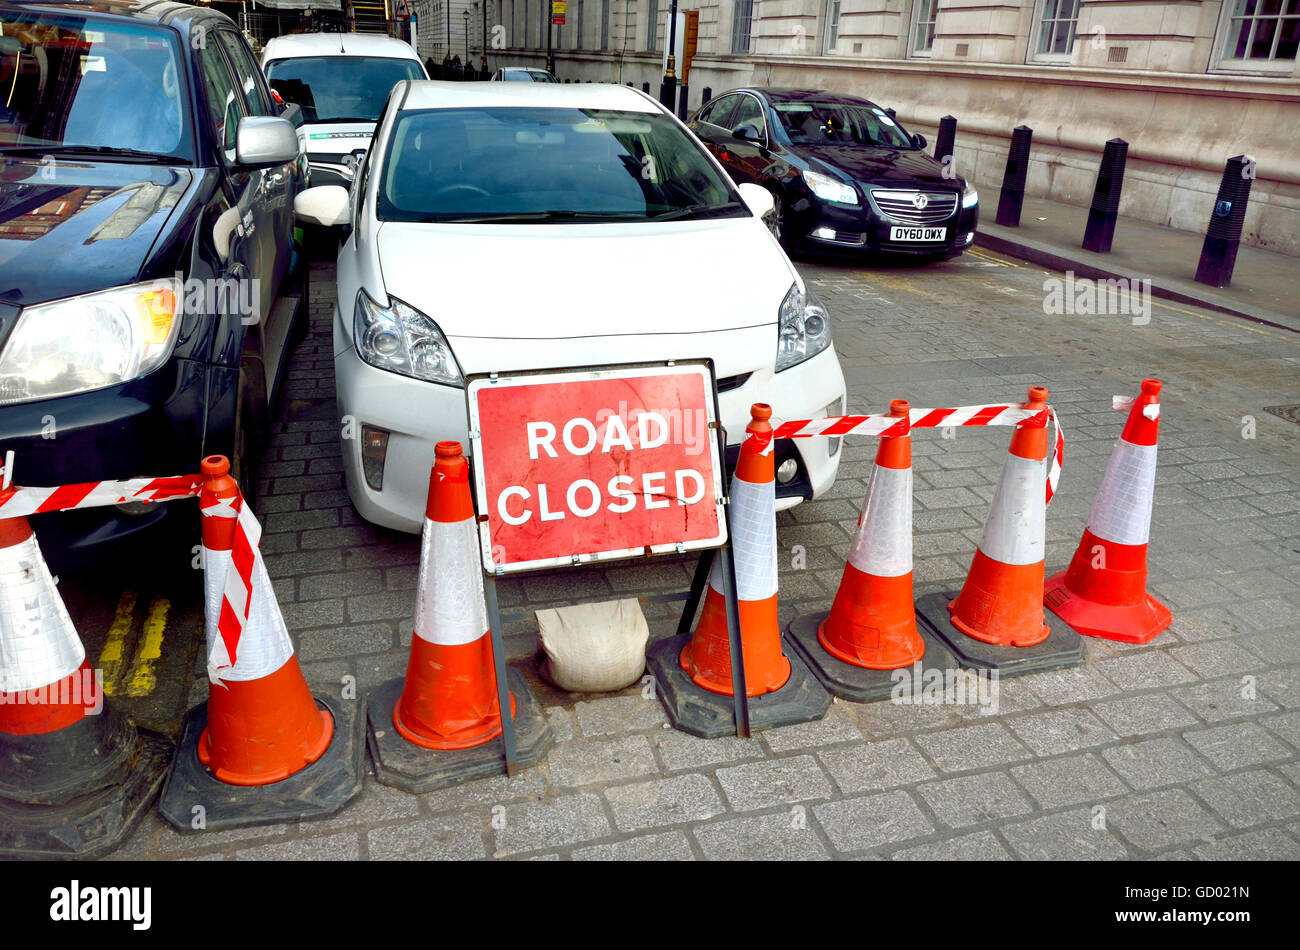 London, England, UK. Road Closed sign and cars, Whitehall - Stock Image